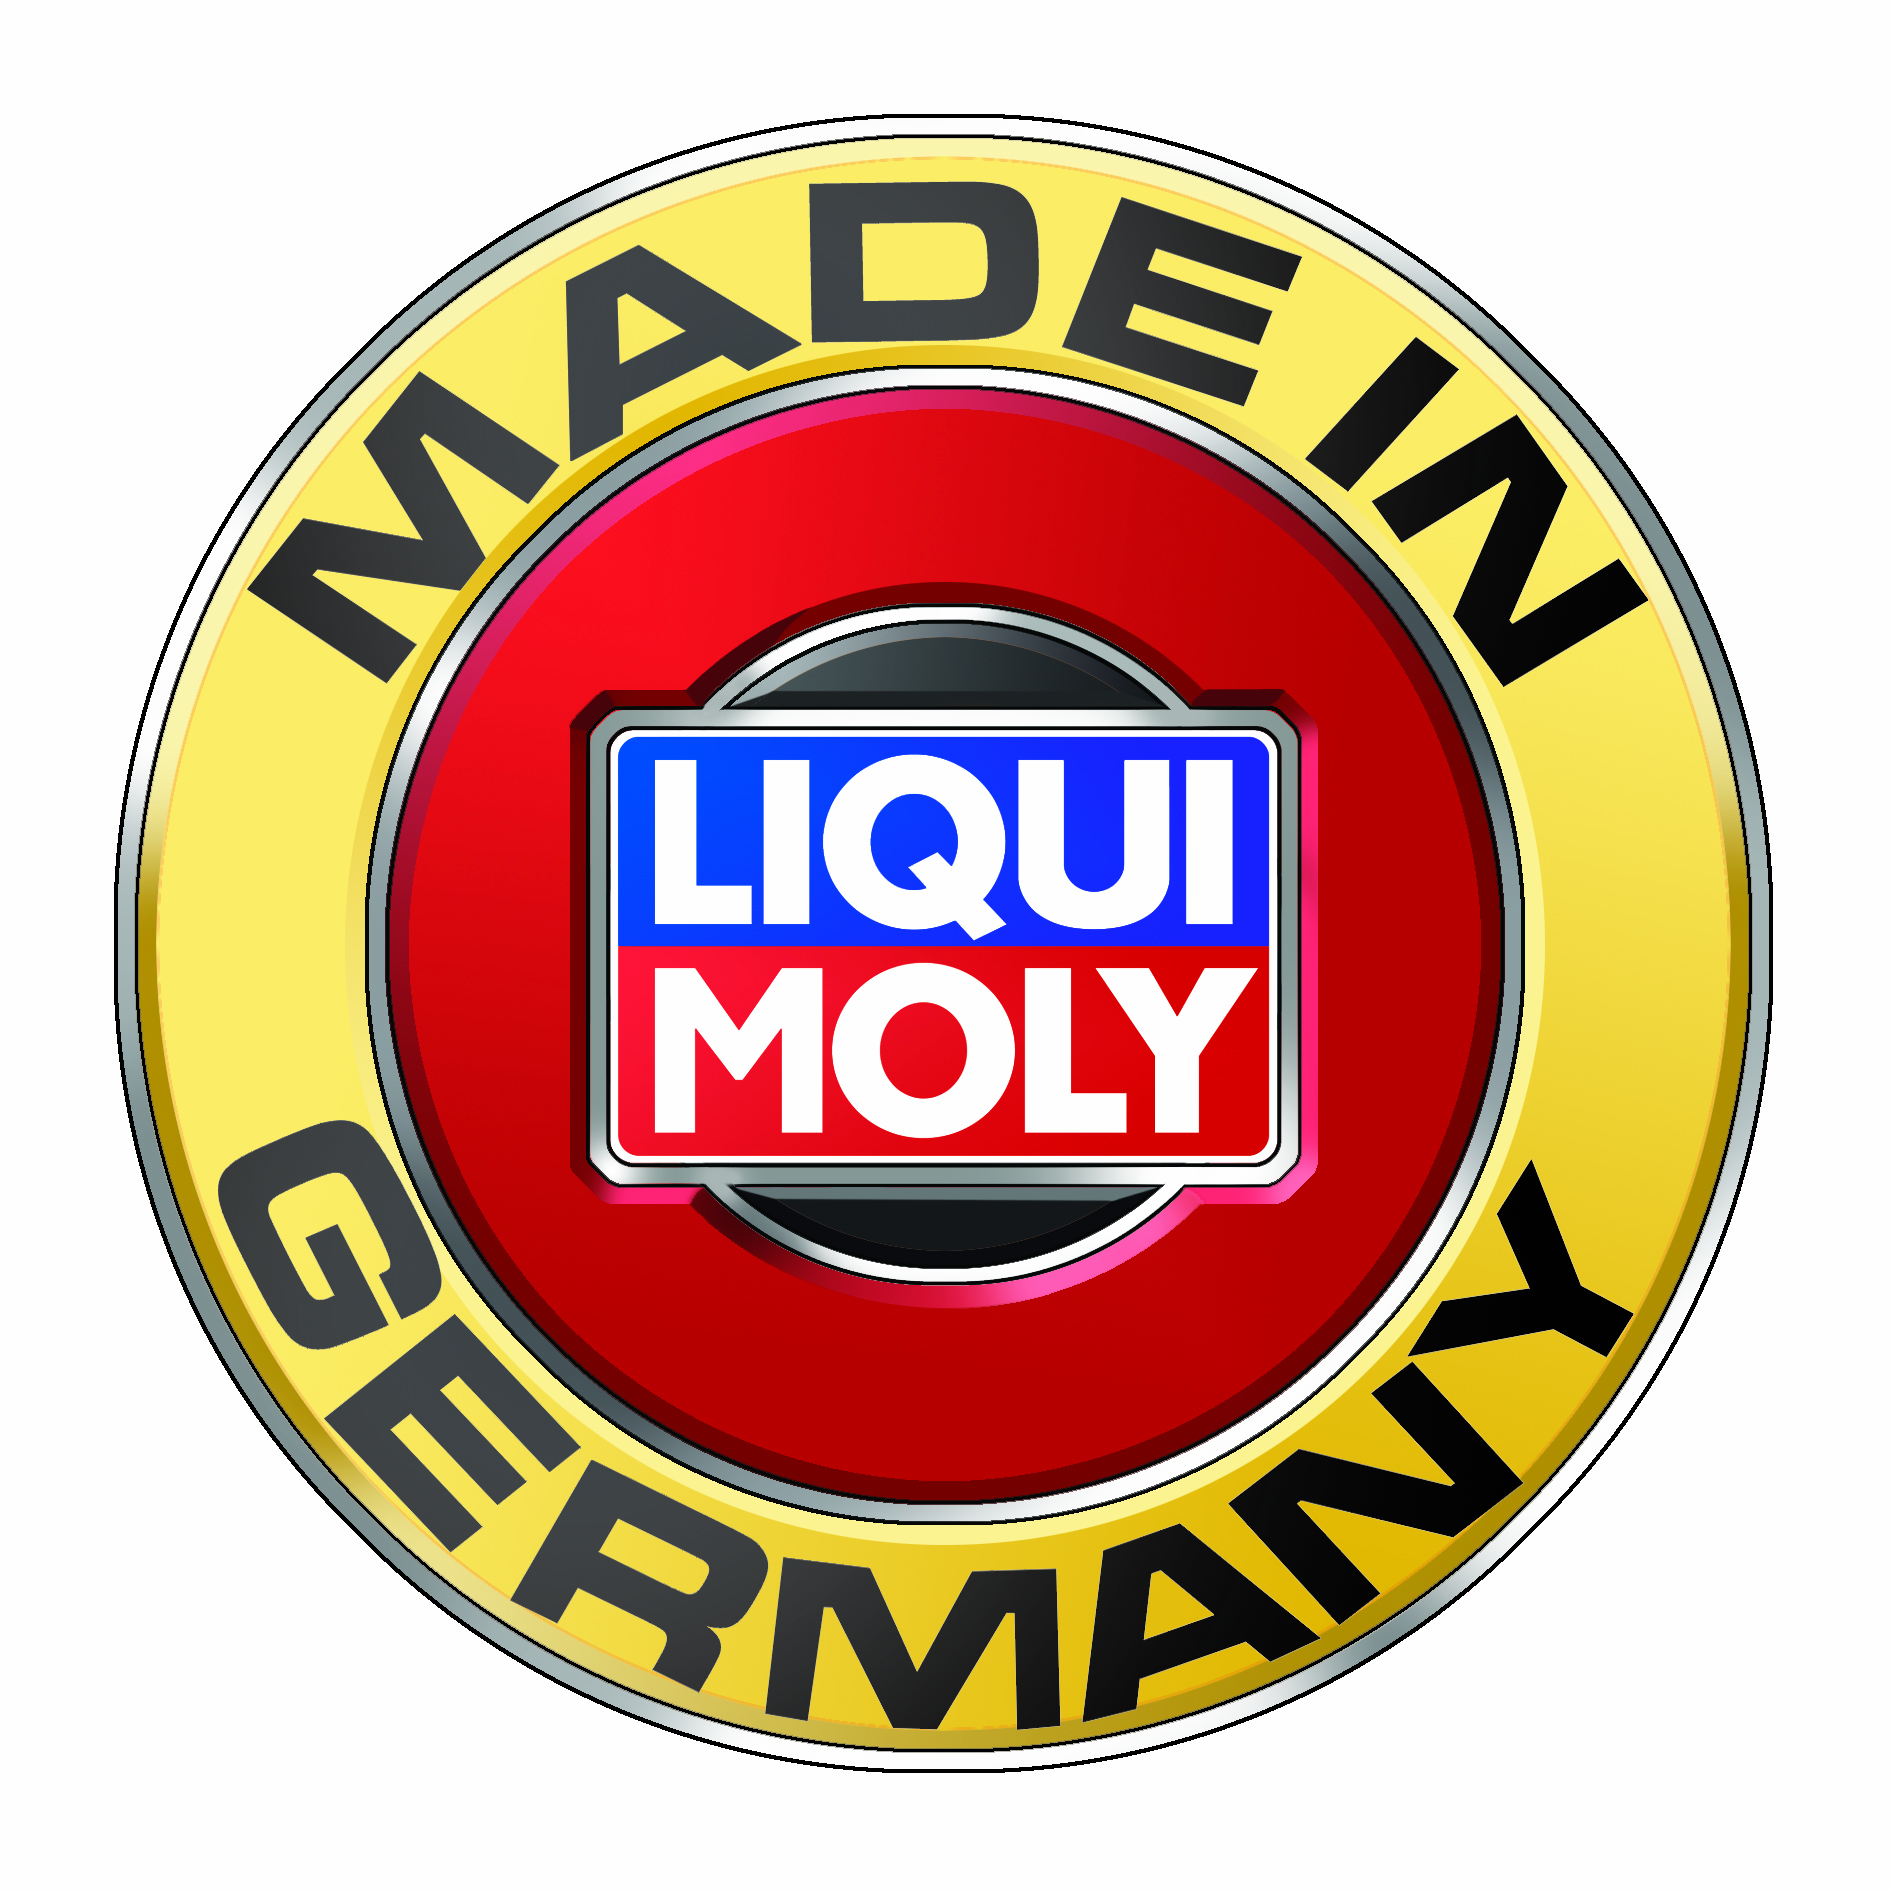 LiquiMoly Made in Germany